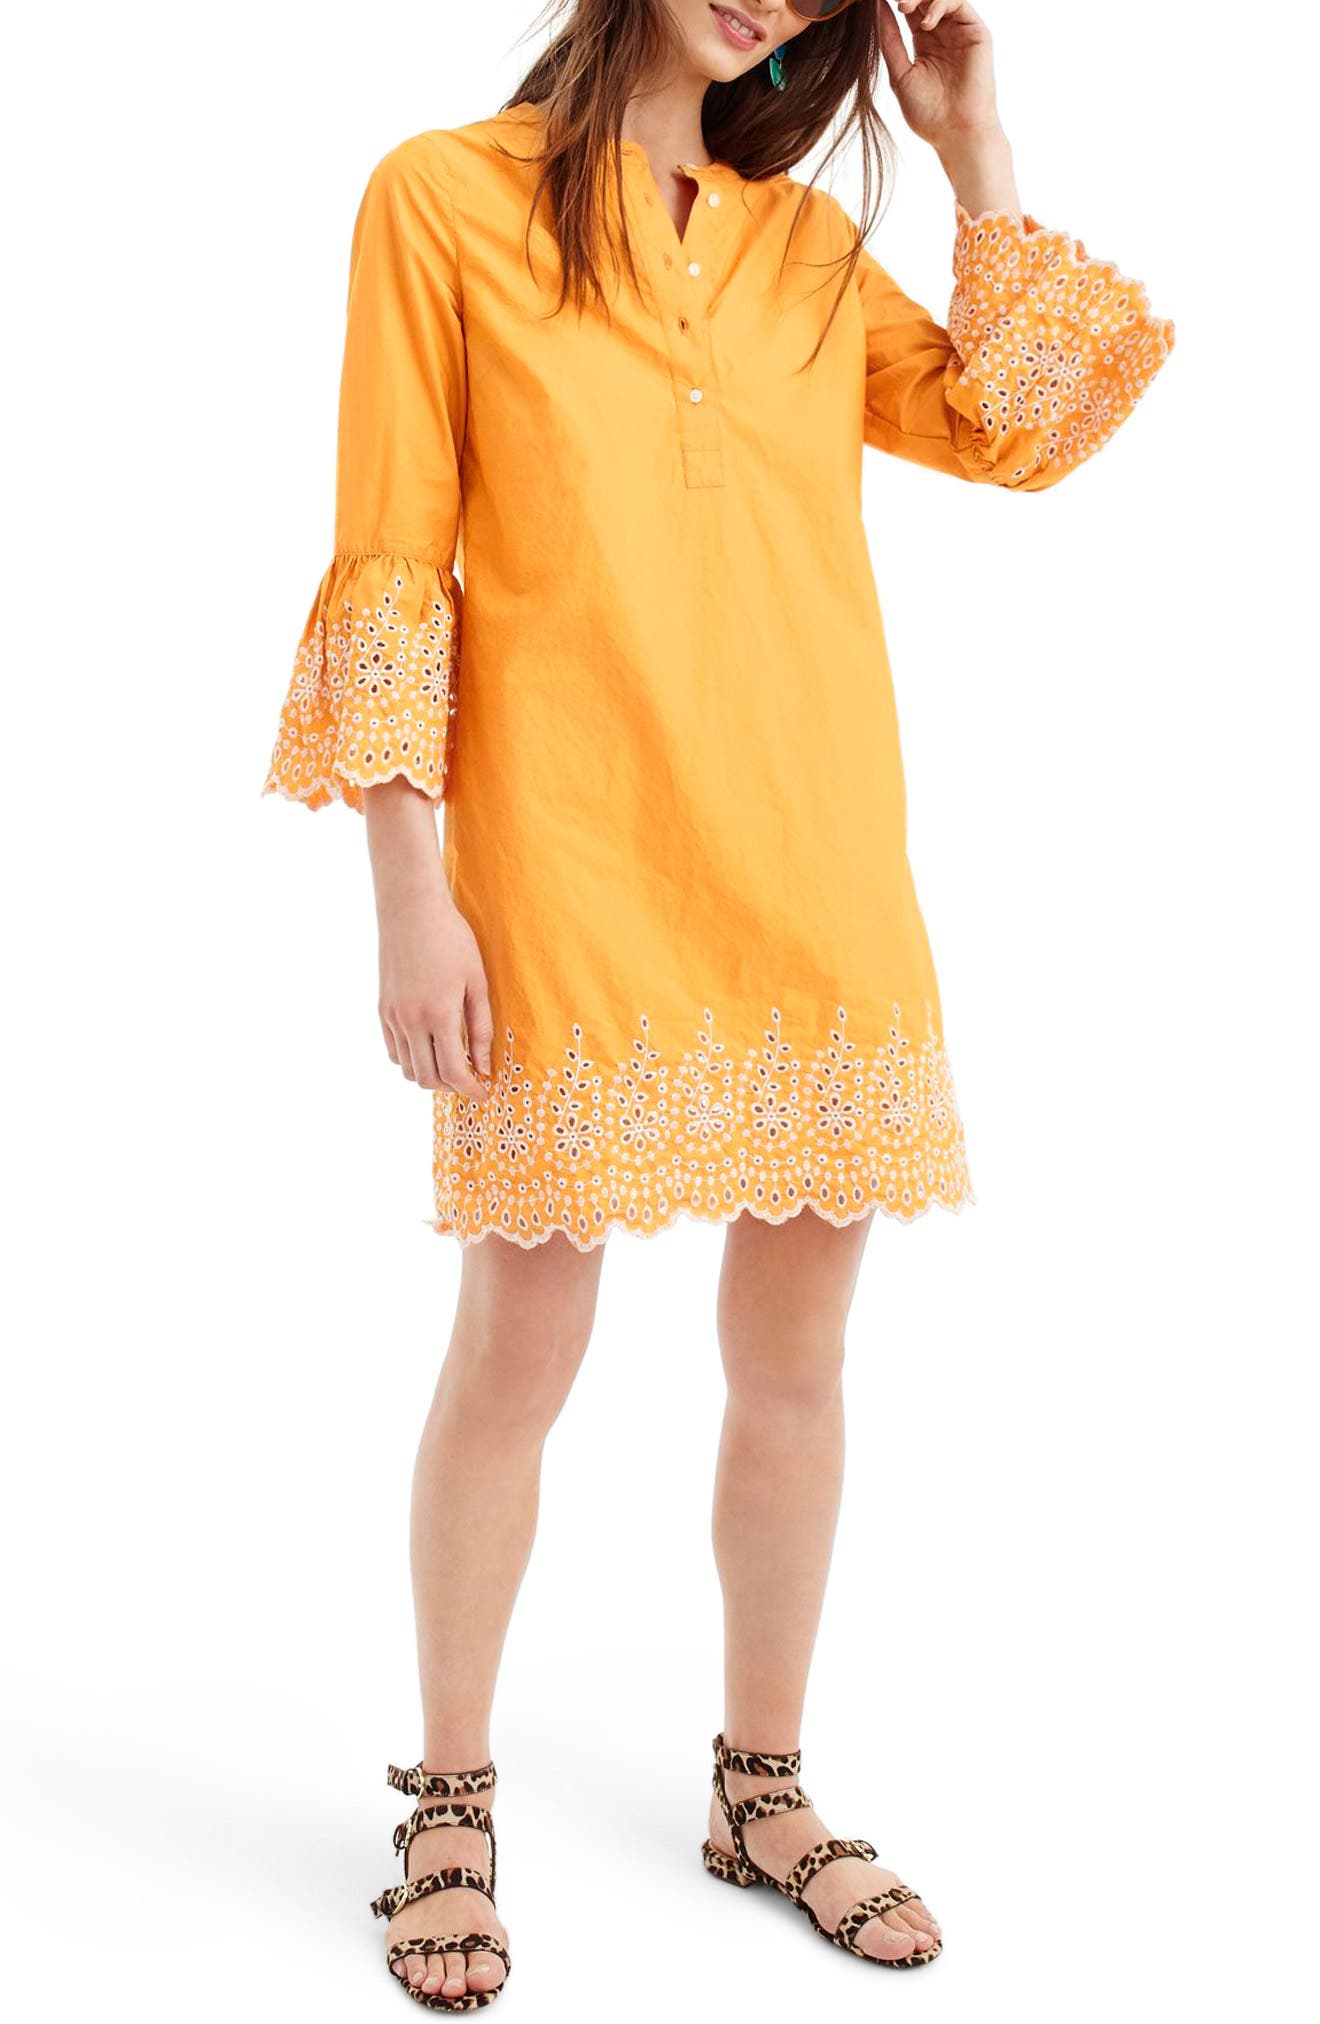 J.Crew Eyelet Bell Sleeve Dress,                             Main thumbnail 1, color,                             Bronzed Orange